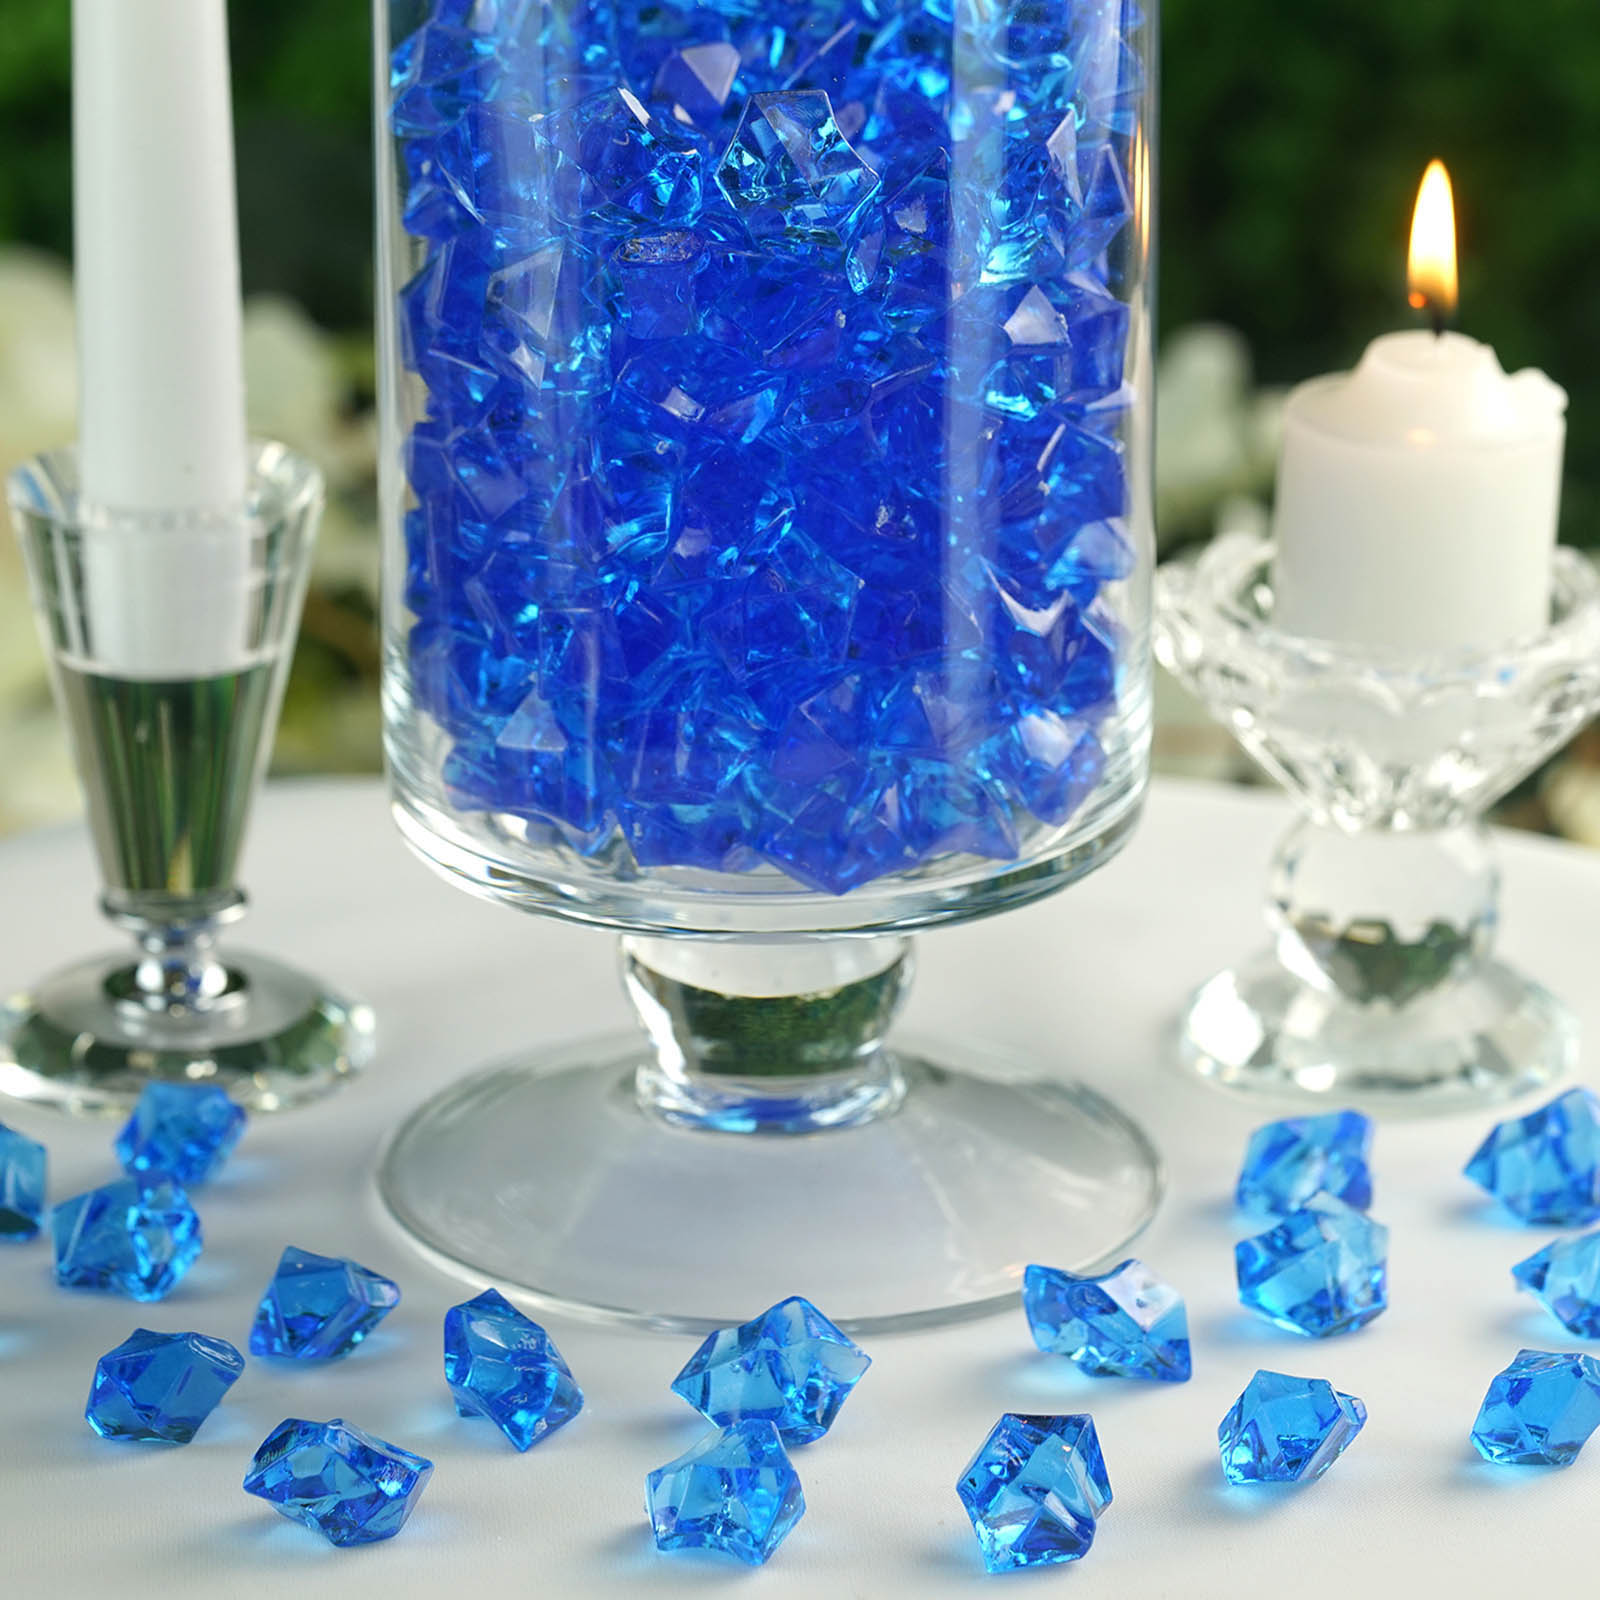 300-Acrylic-Ice-CRYSTAL-LIKE-Pieces-Wedding-Centerpieces-Decorations-Supplies thumbnail 59